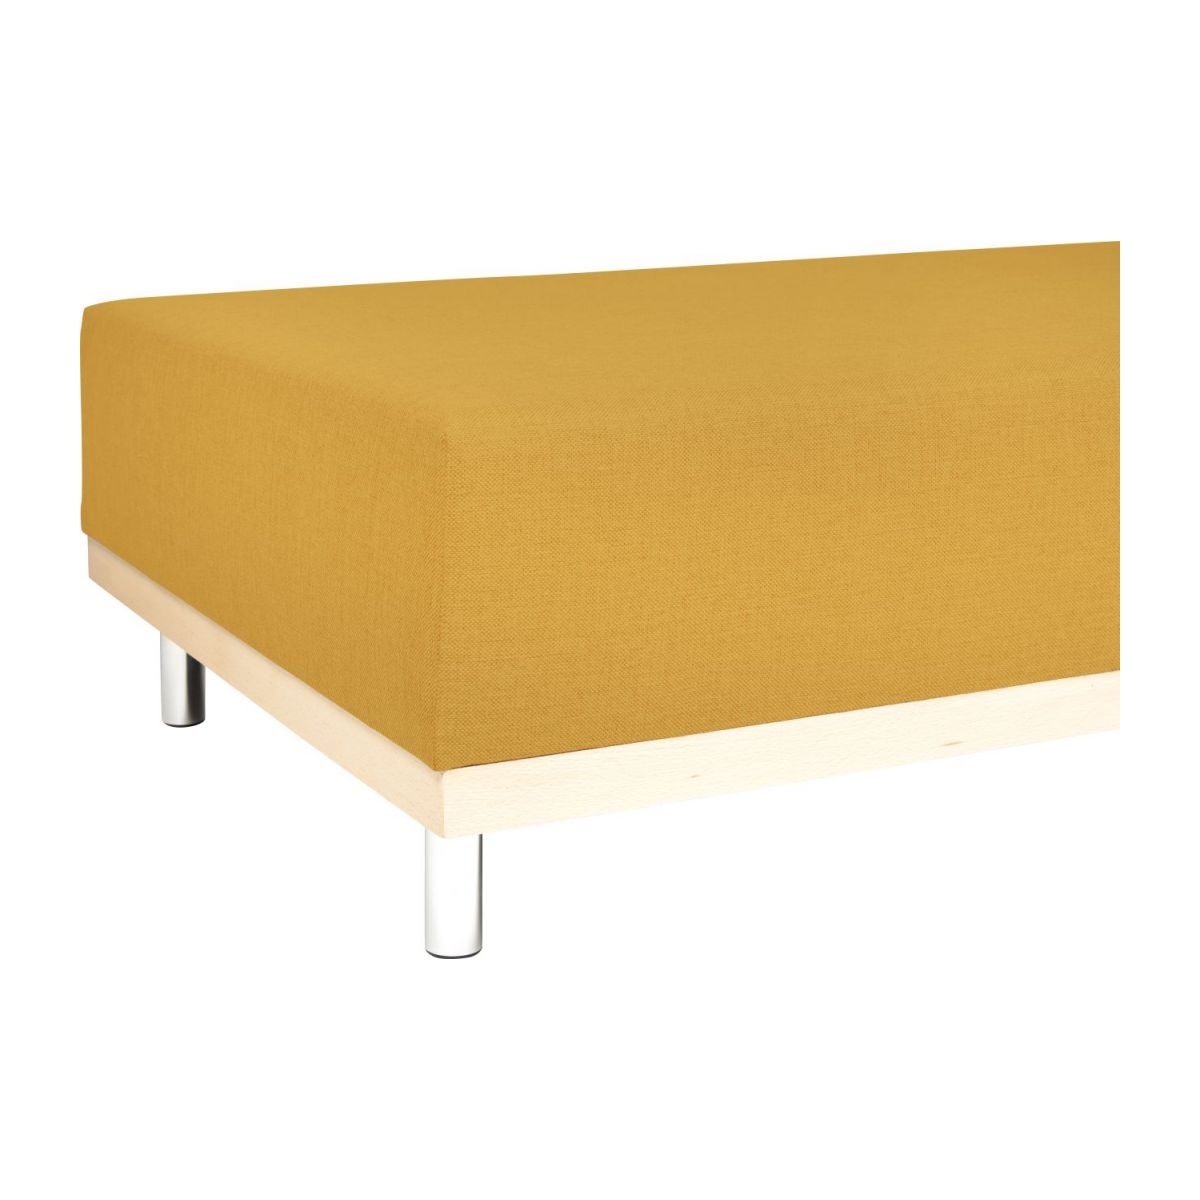 Chaiselongue Schlaffunktion Fifties Ii Chaiselongue Mit Schlaffunktion Stoff Habitat